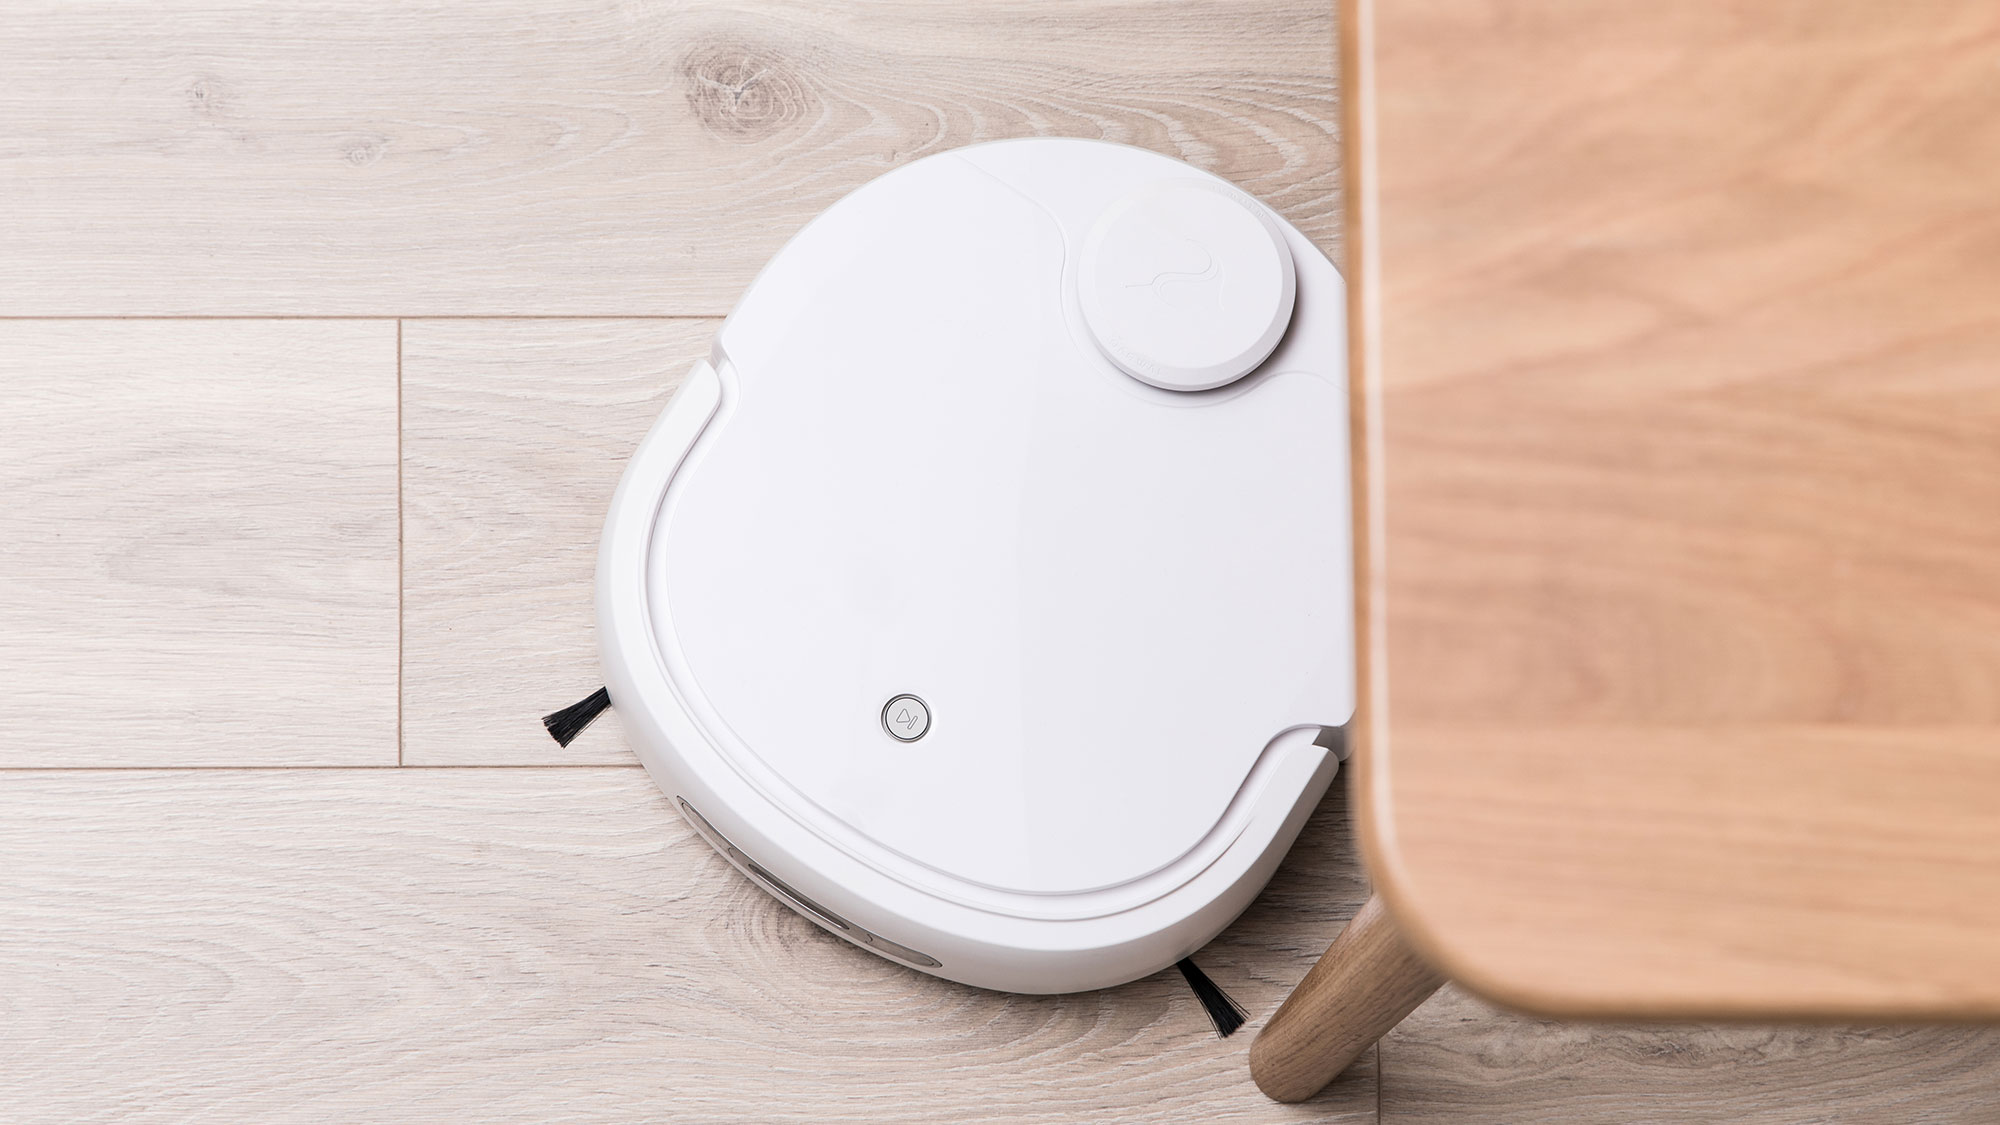 Narwal T10 2-in-1 Robot Mop and Vacuum